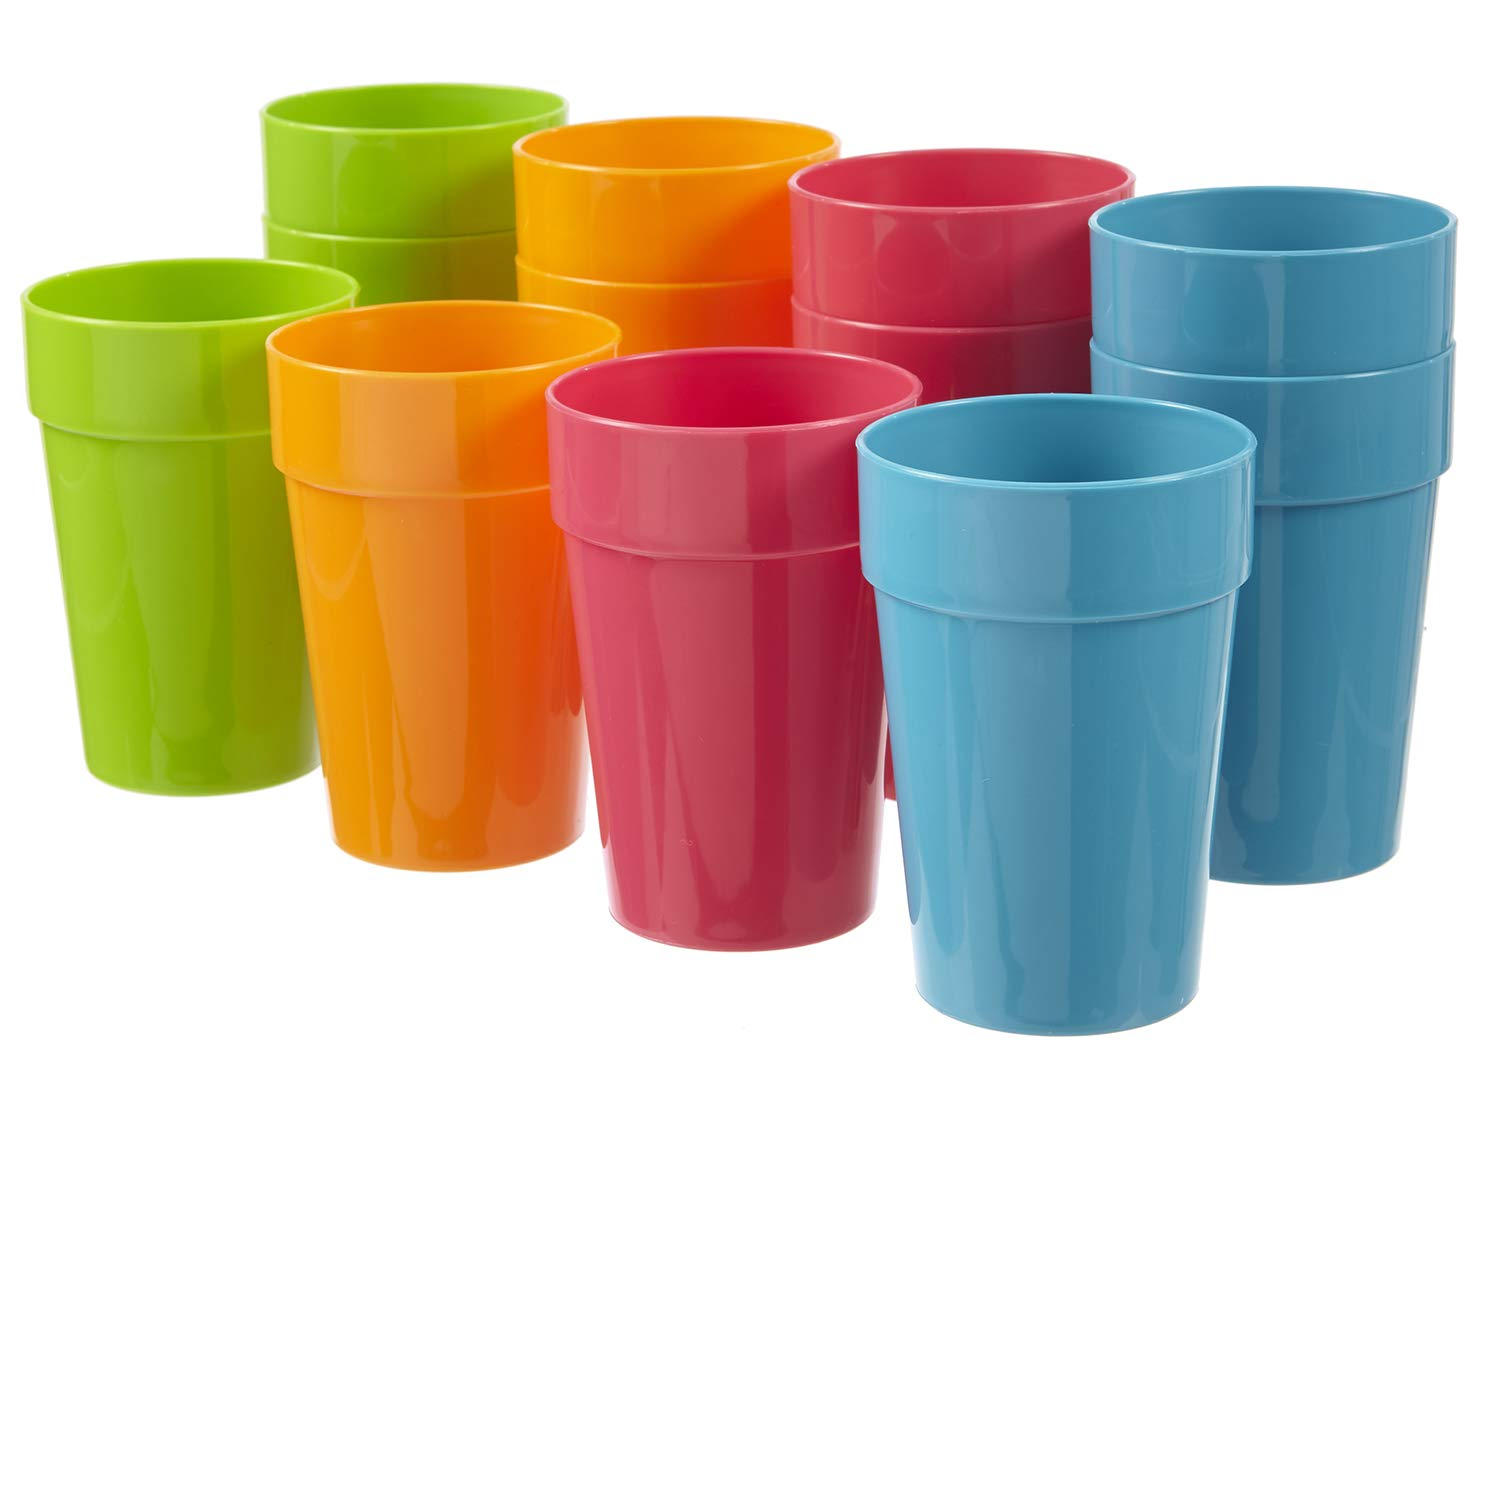 Harmony 10-ounce Juice Cups | set of 12 in 4 Calypso Colors